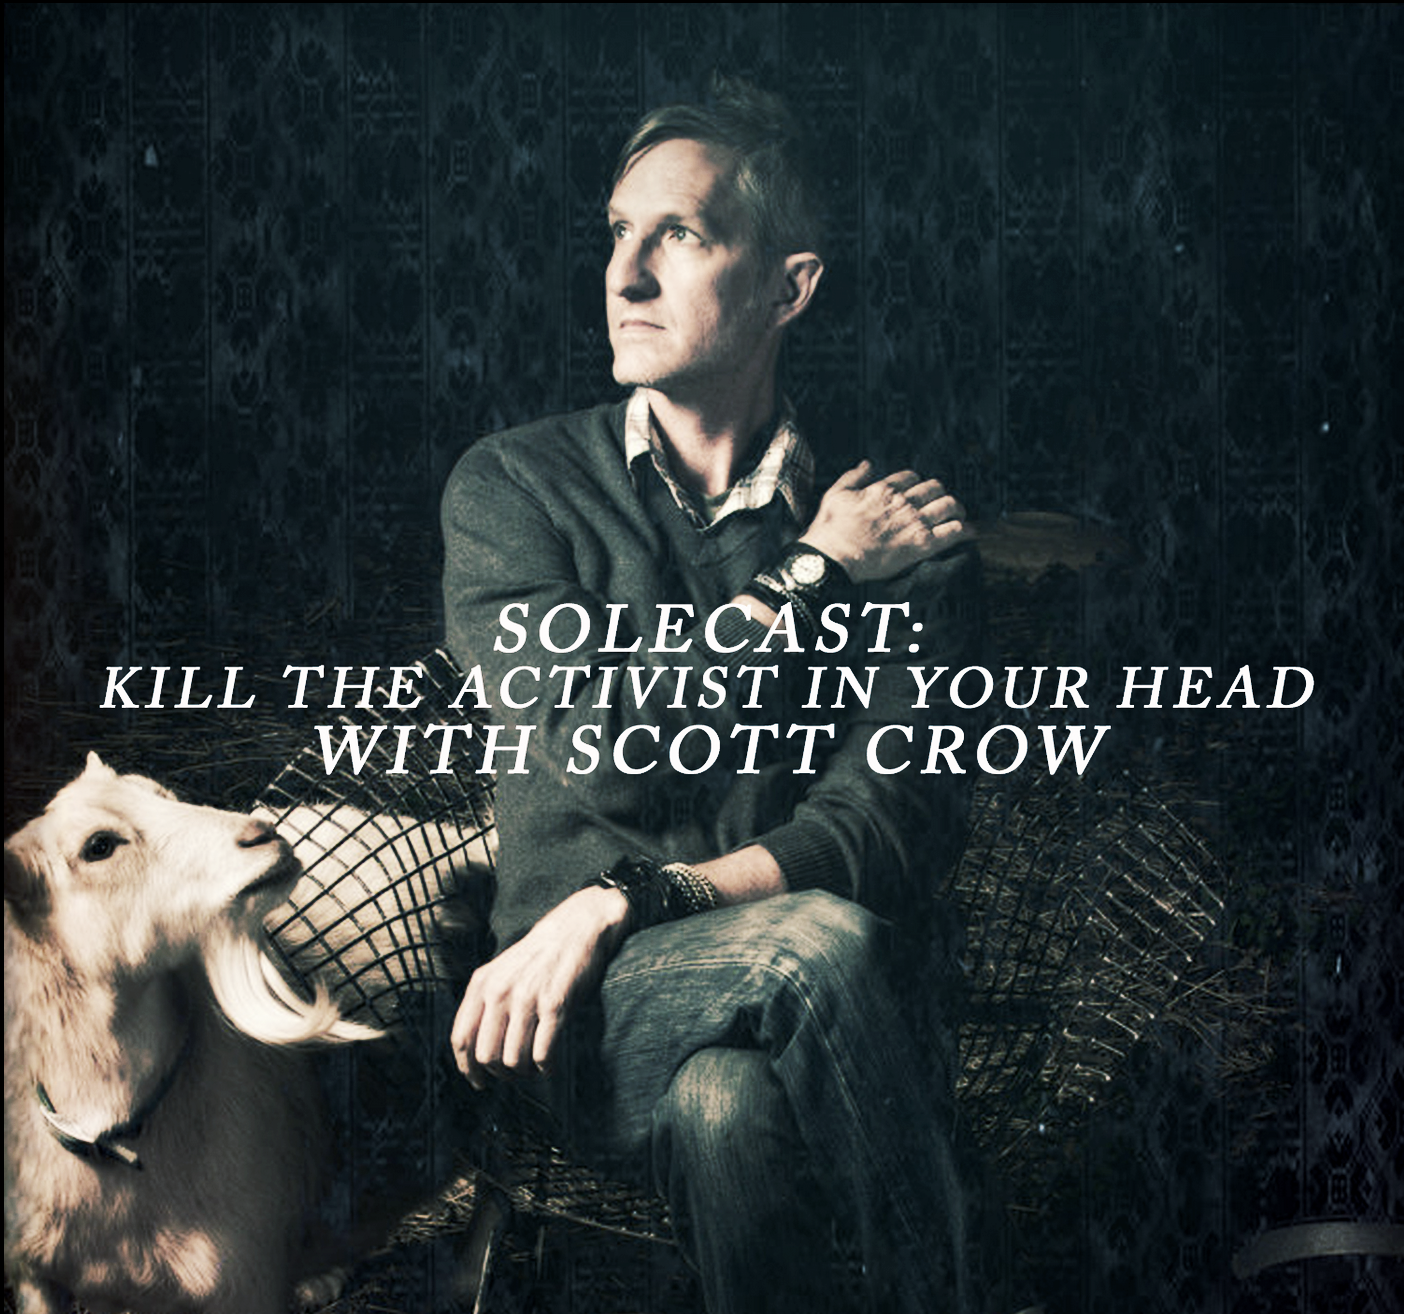 scott crow and pillow goat.png